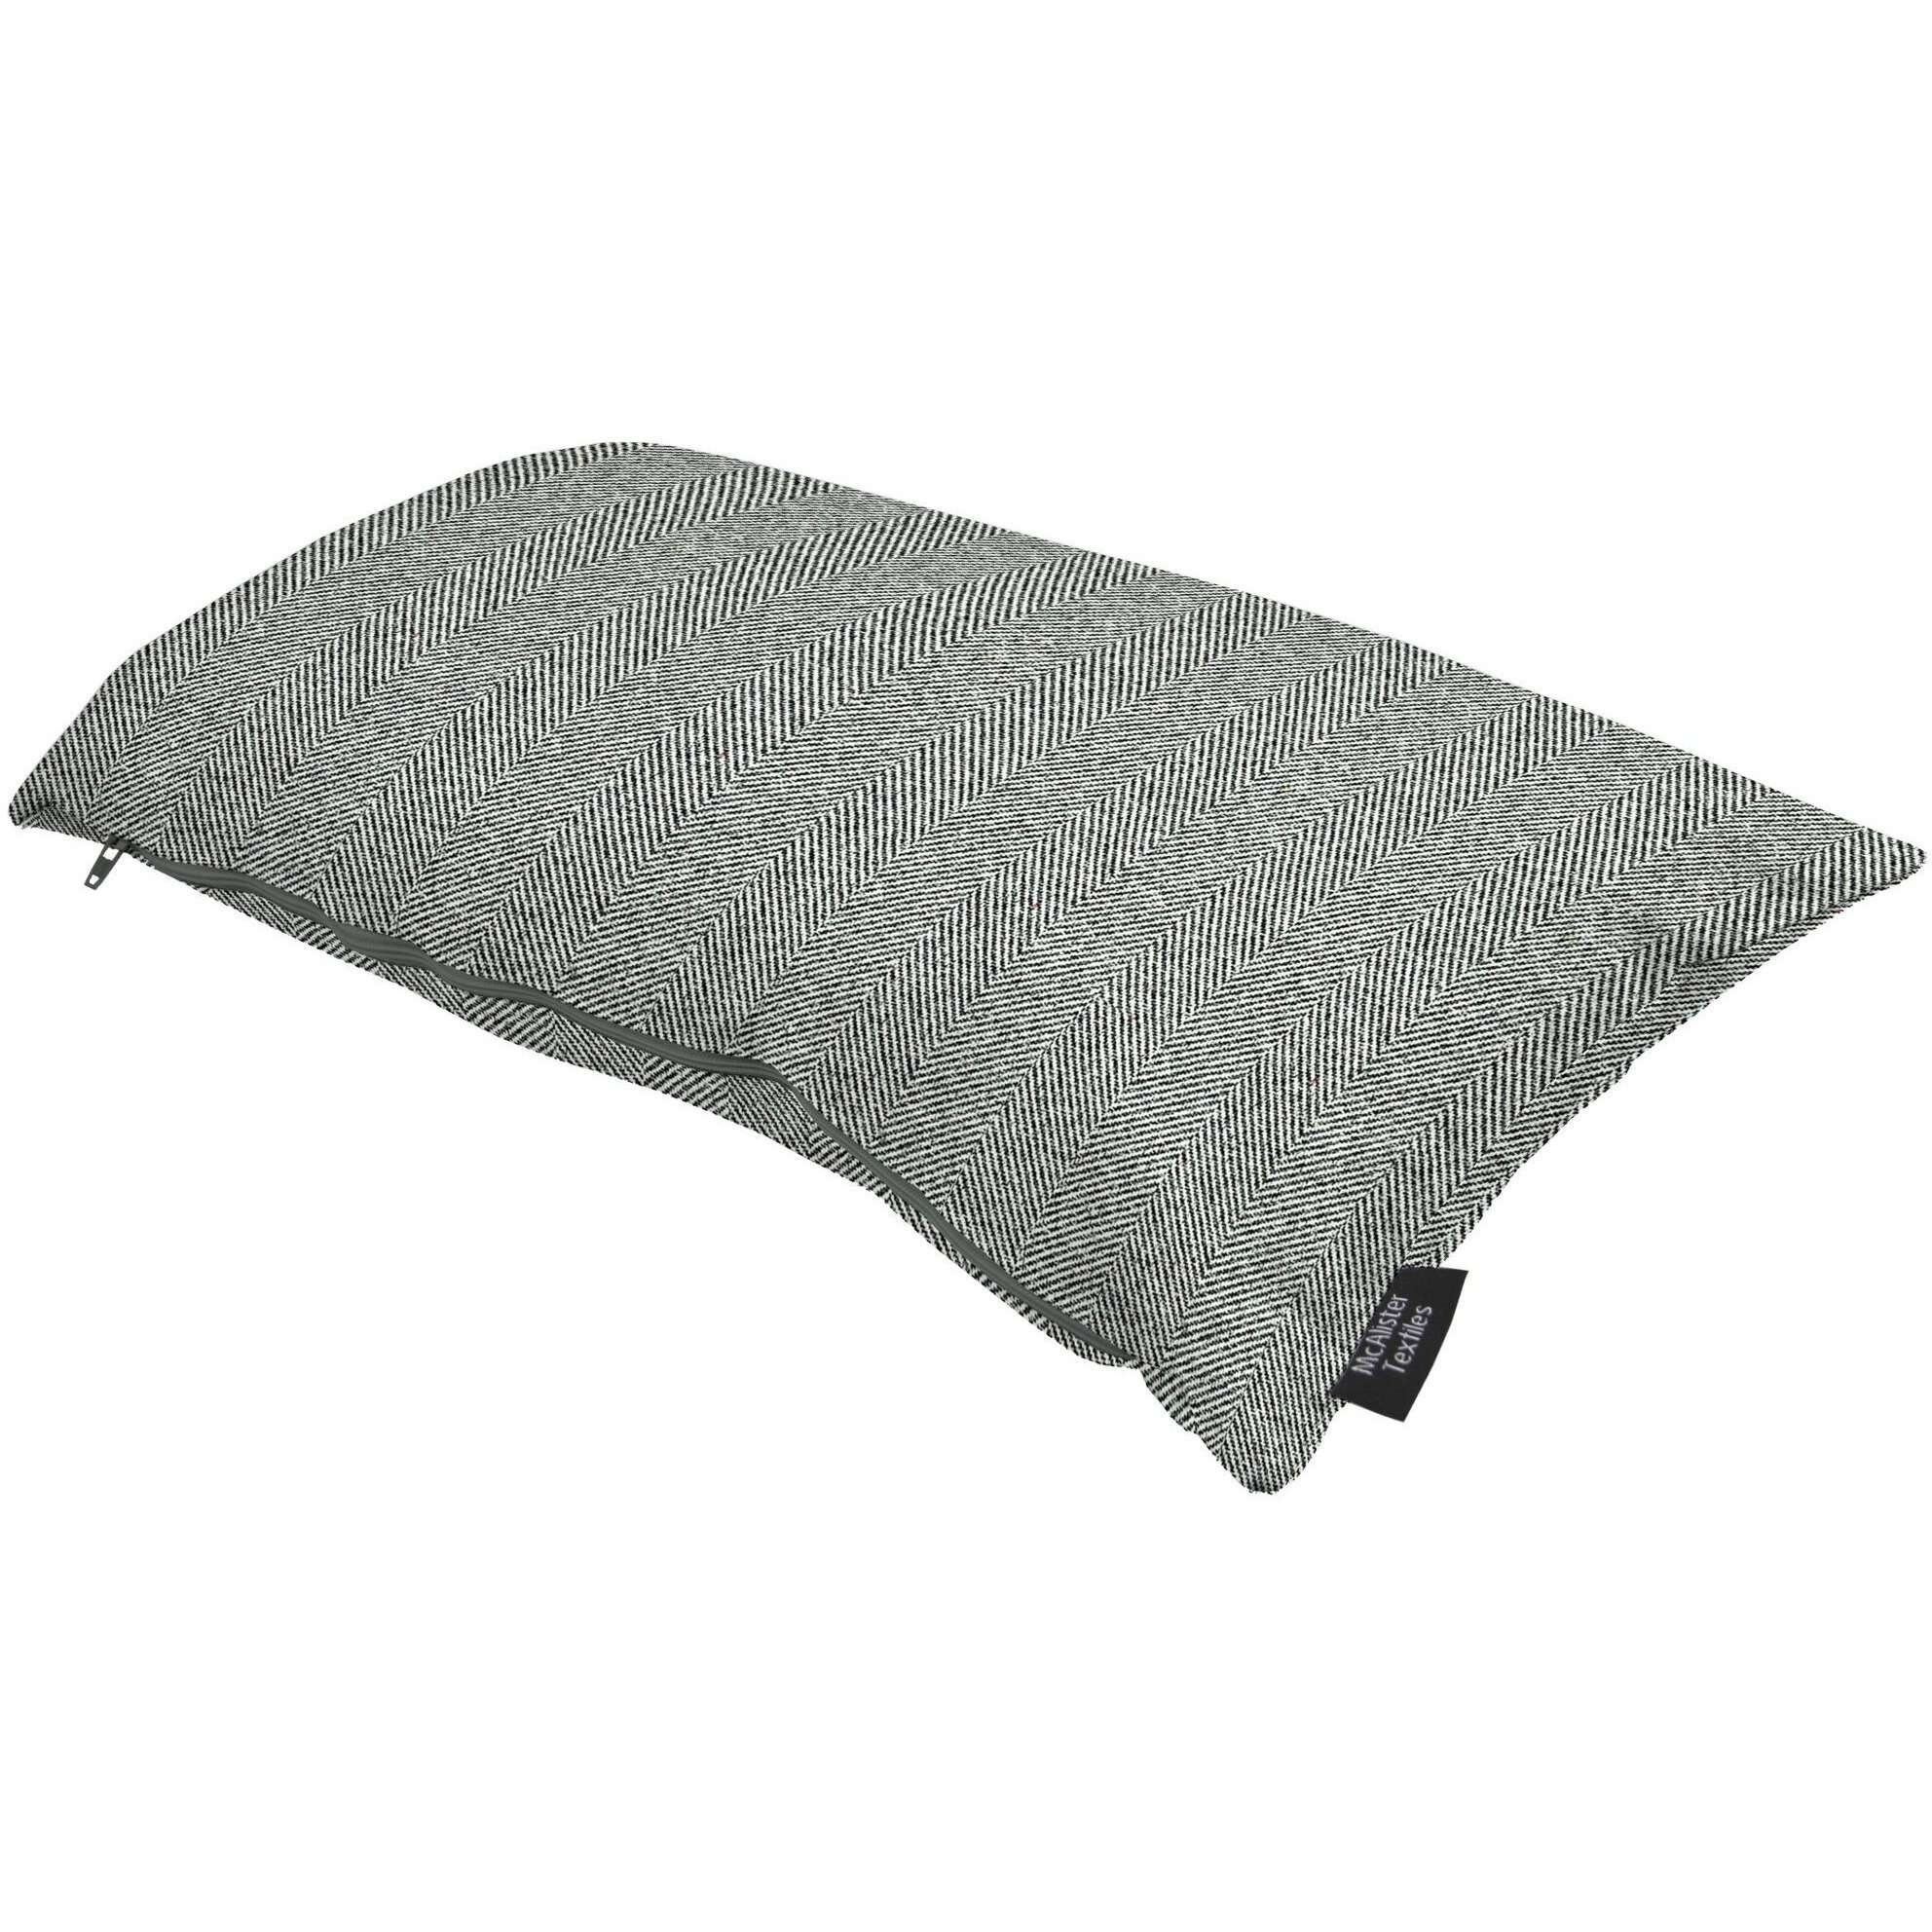 McAlister Textiles Herringbone Charcoal Grey Cushion Cushions and Covers